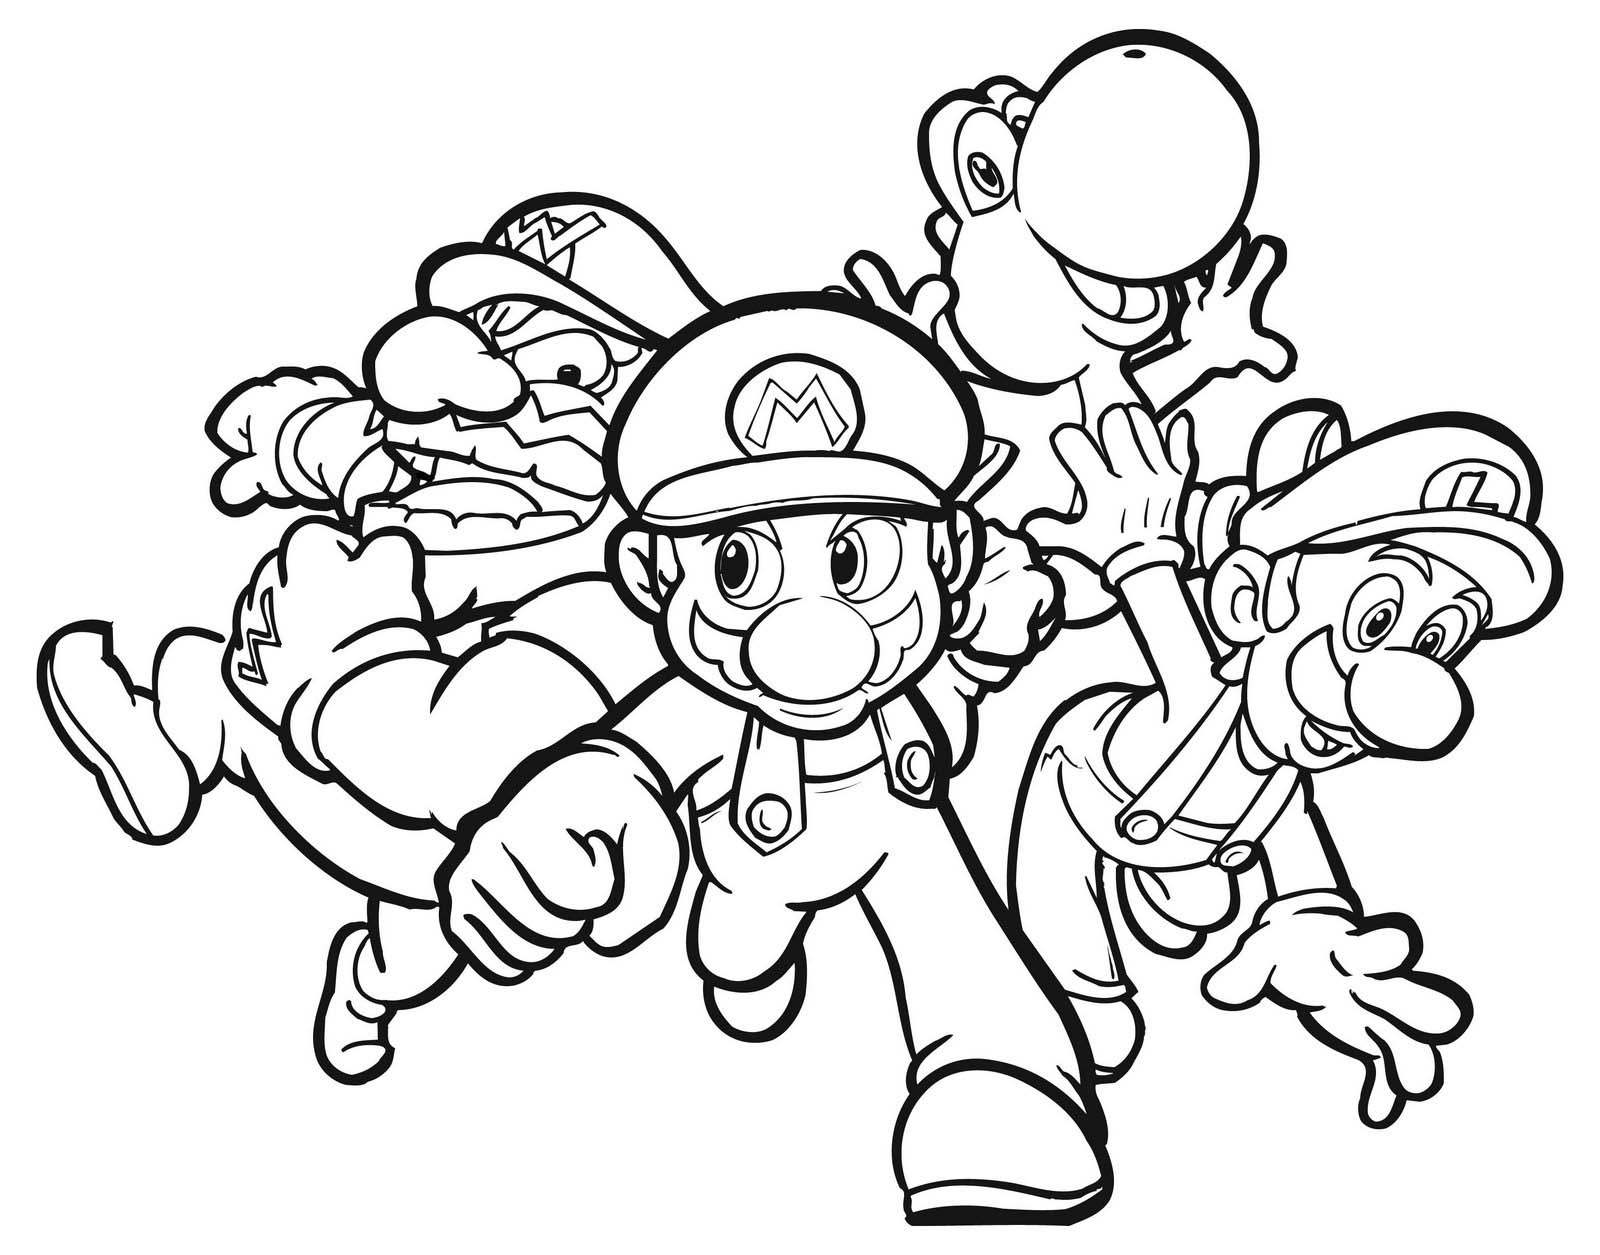 Super Mario Coloring Pages 5 Coloring Kids